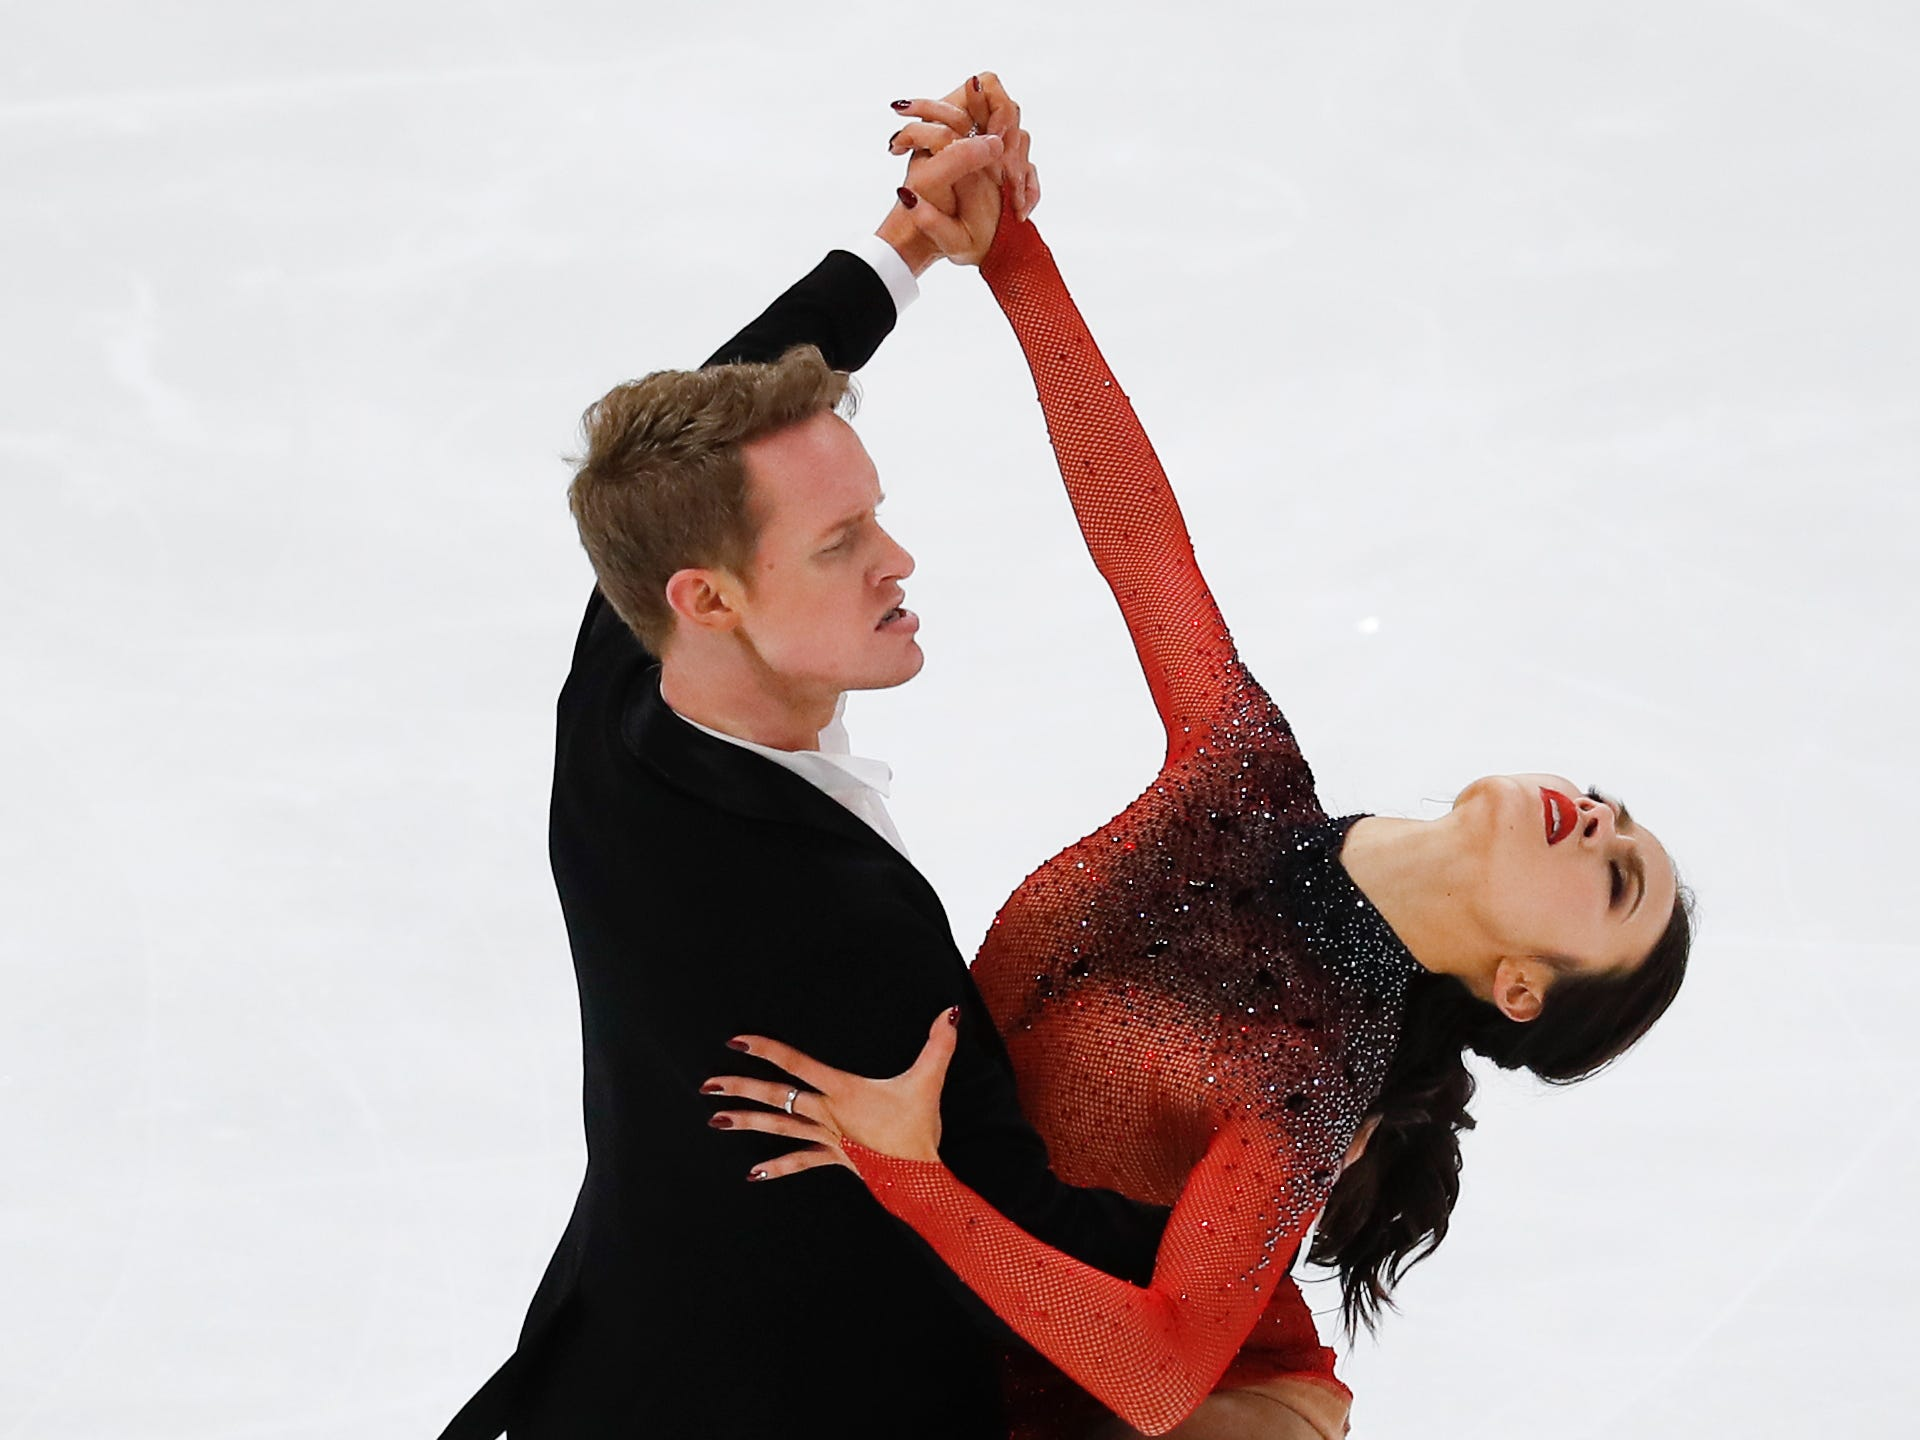 Taking second place, Madison Chock and Evan Bates perform their rhythm dance program at the U.S. Figure Skating Championships, Friday, Jan. 25, 2019, in Detroit.